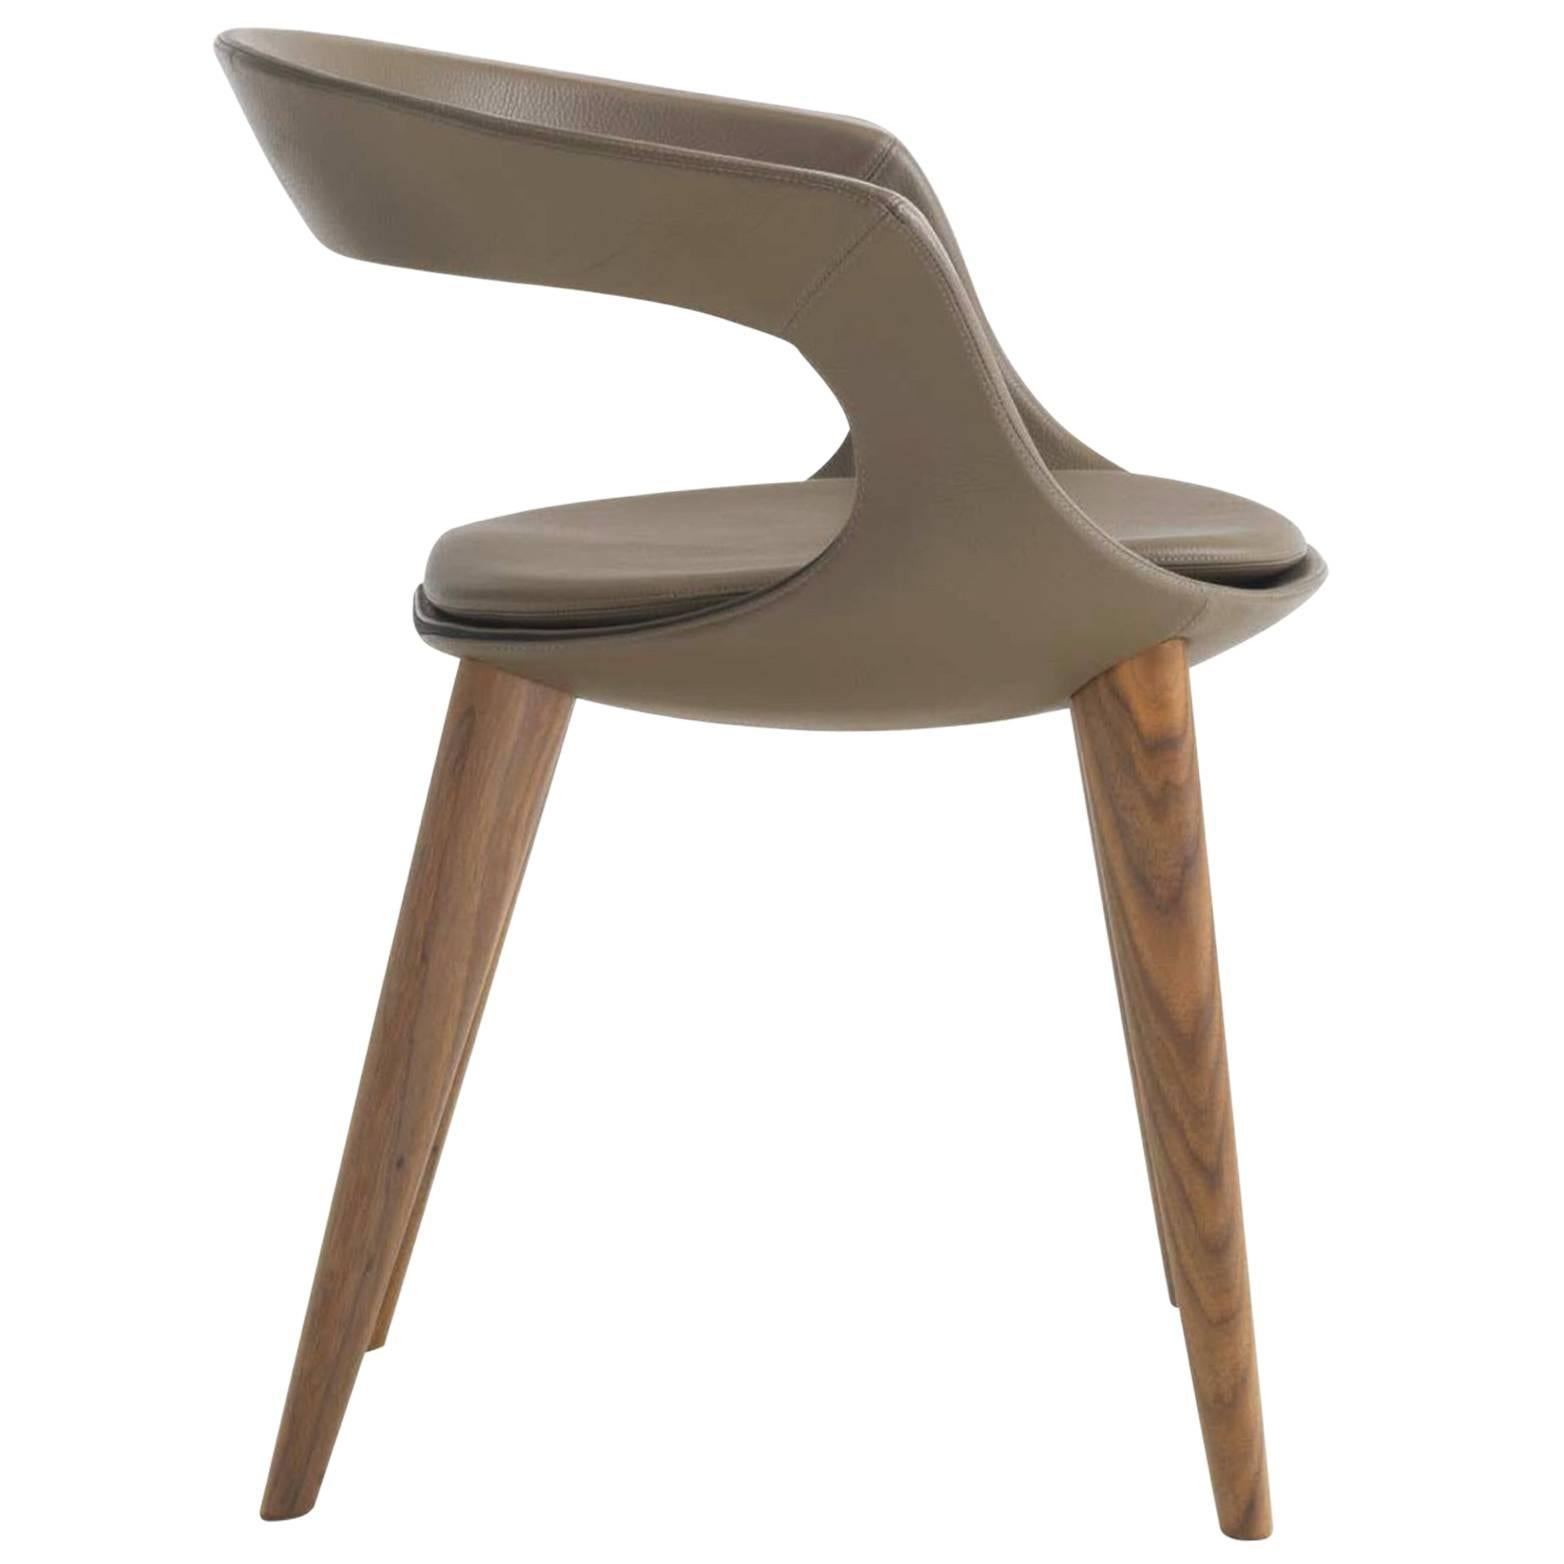 leather dining chairs modern chair covers rentals in dallas italian with wooden legs hand made italy for sale